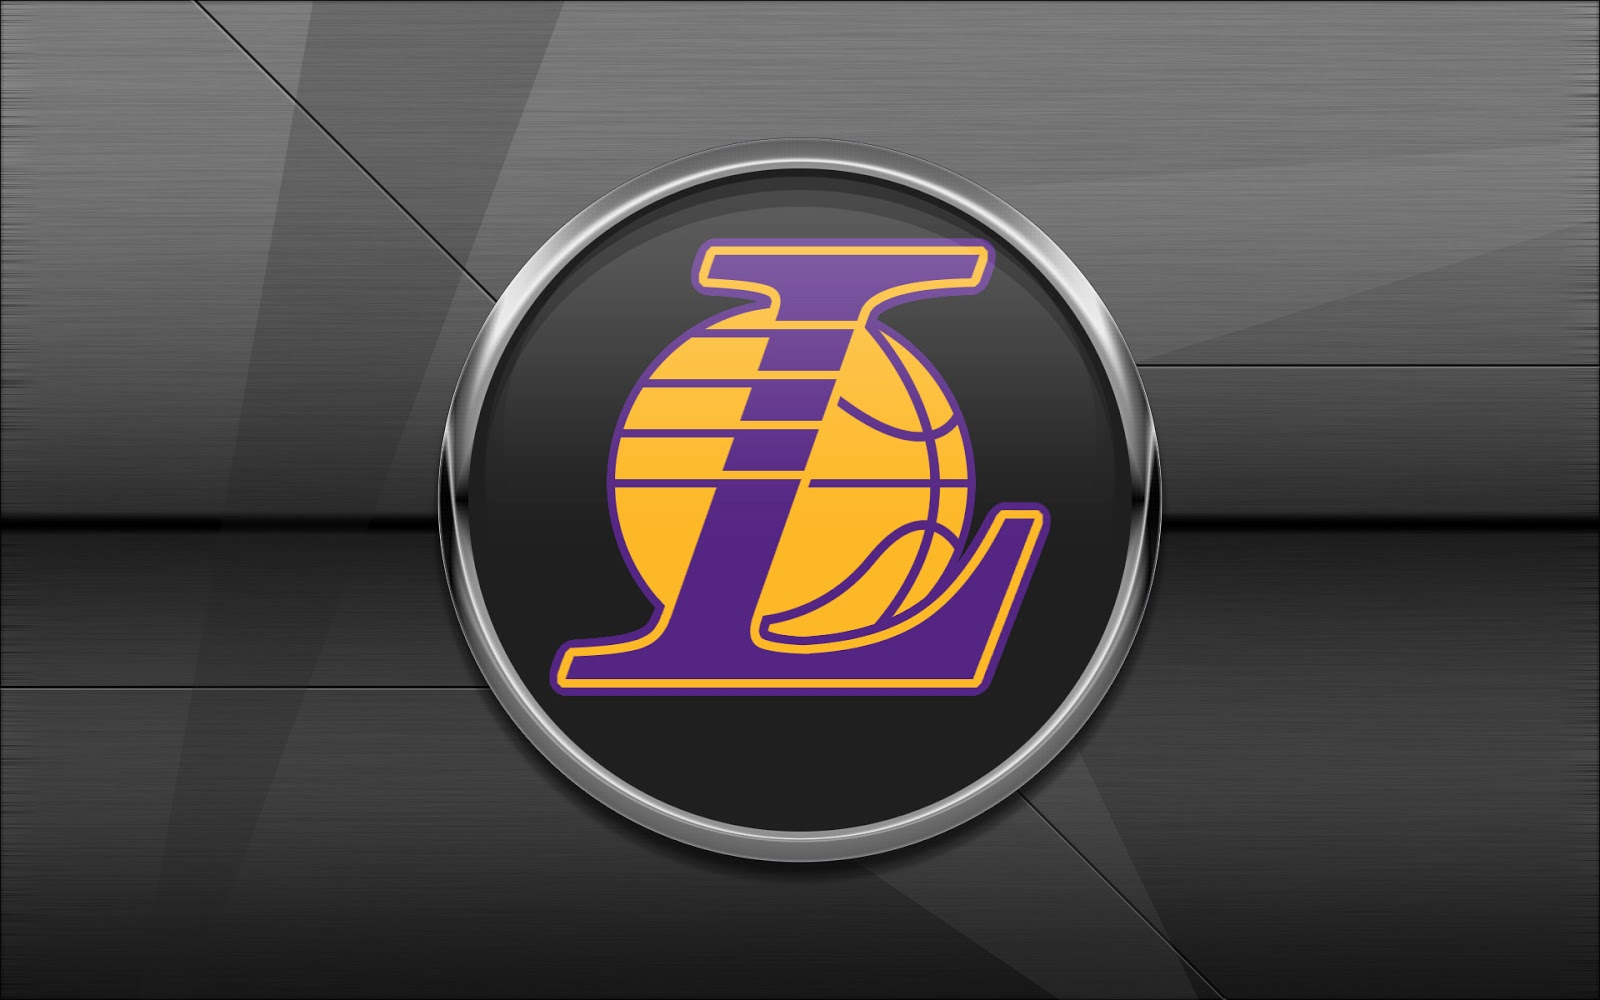 http://2.bp.blogspot.com/-yj7_Kl0ibCY/UOqyOu2SdfI/AAAAAAAAcvA/6c98EmRNmFY/s1600/La+Lakers+Basketball+Club+Logo+Wallpaper+2013+06.jpg